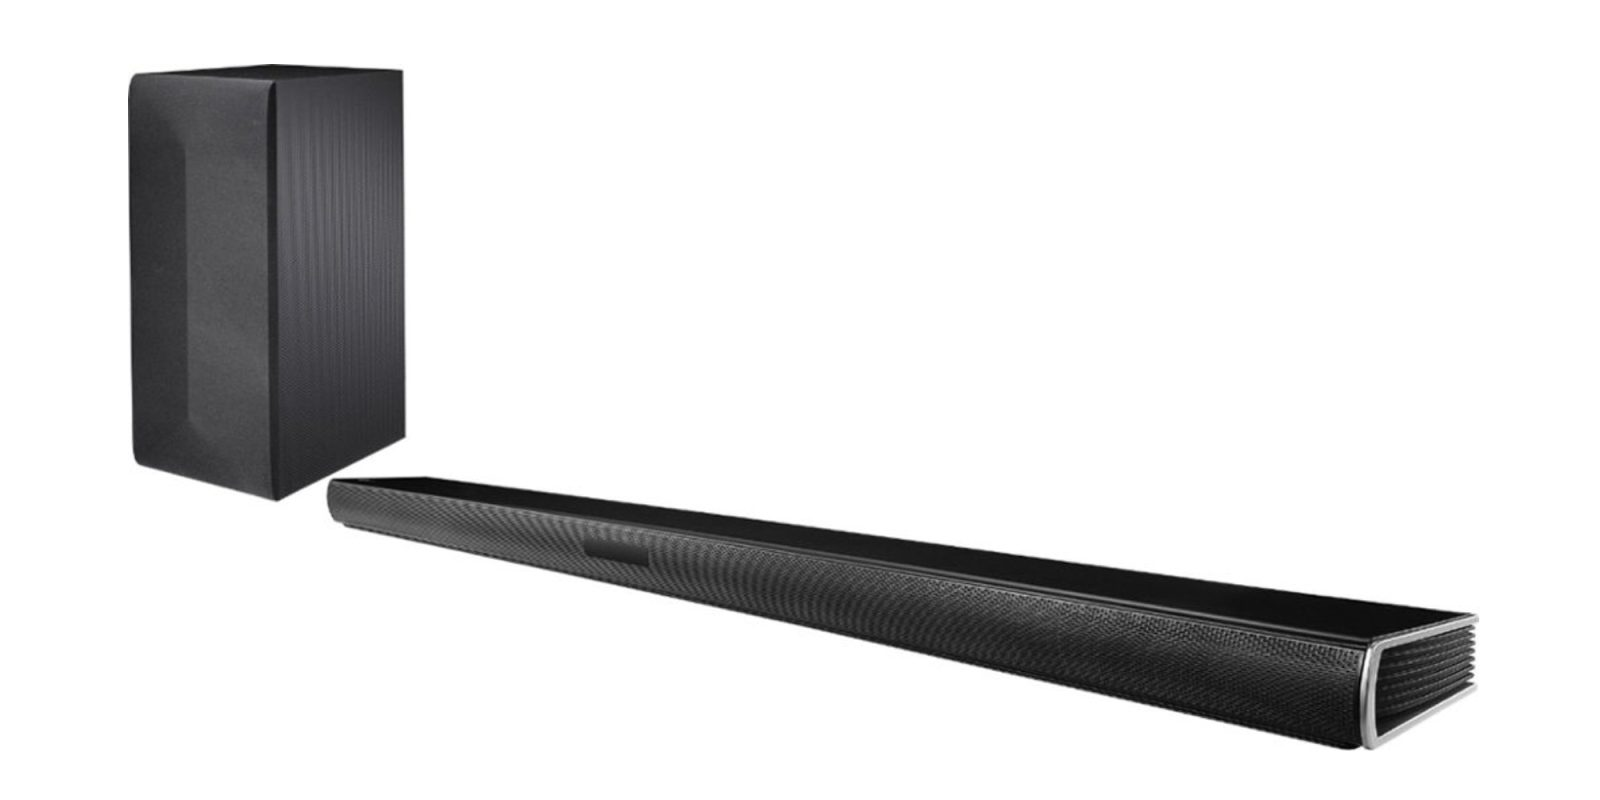 Replace your TV's built-in speakers w/ the LG 2 1-Ch